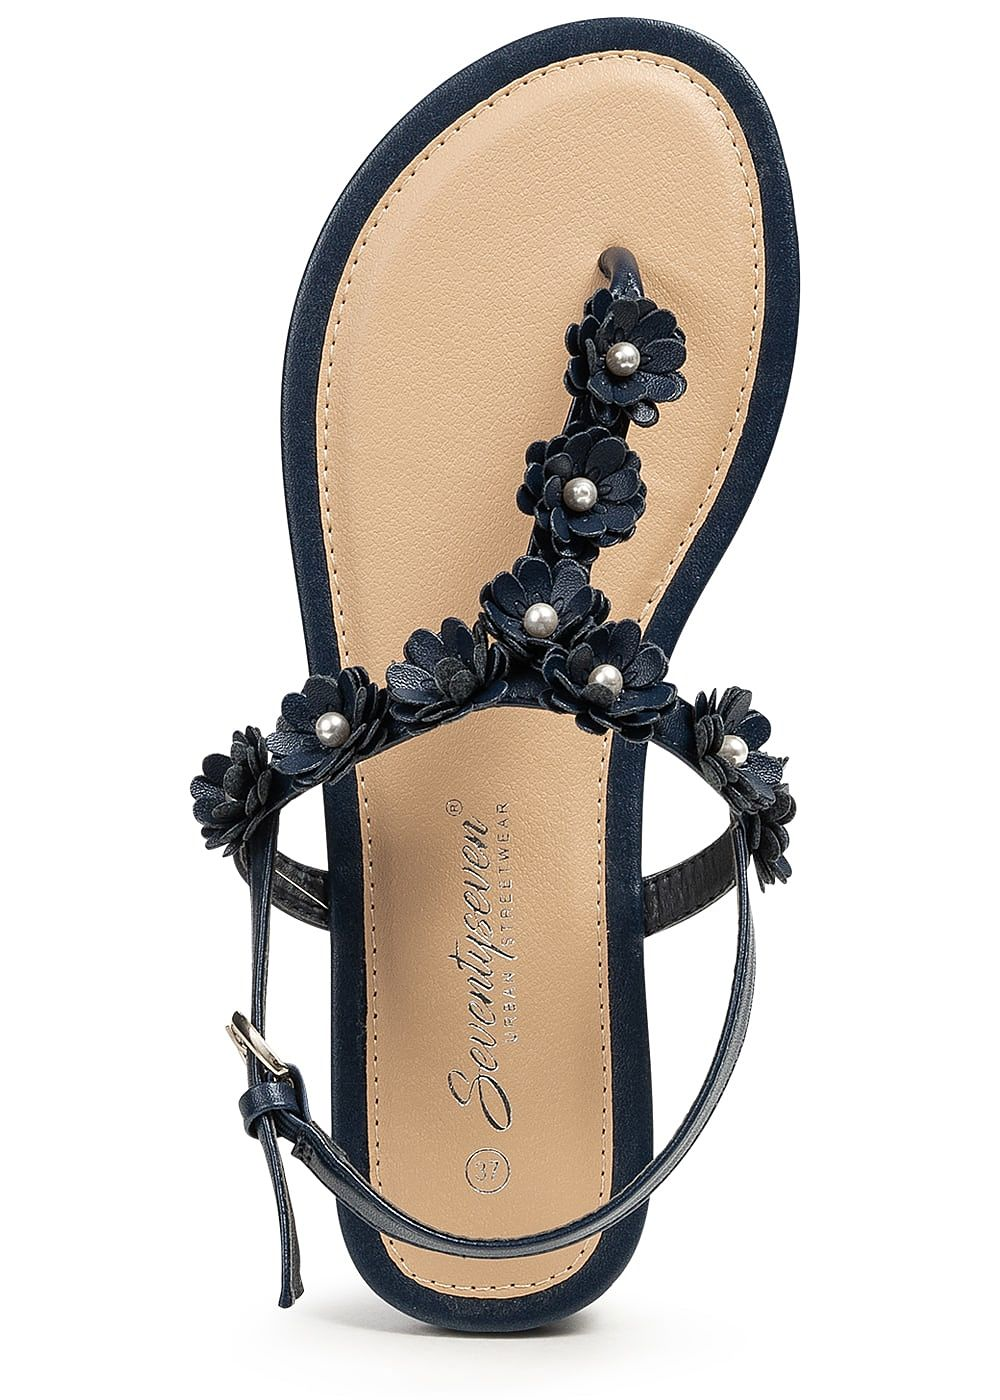 Seventyseven Lifestyle Damen Flower Toe Post Sandals navy blau - Art.-Nr.: 19049009